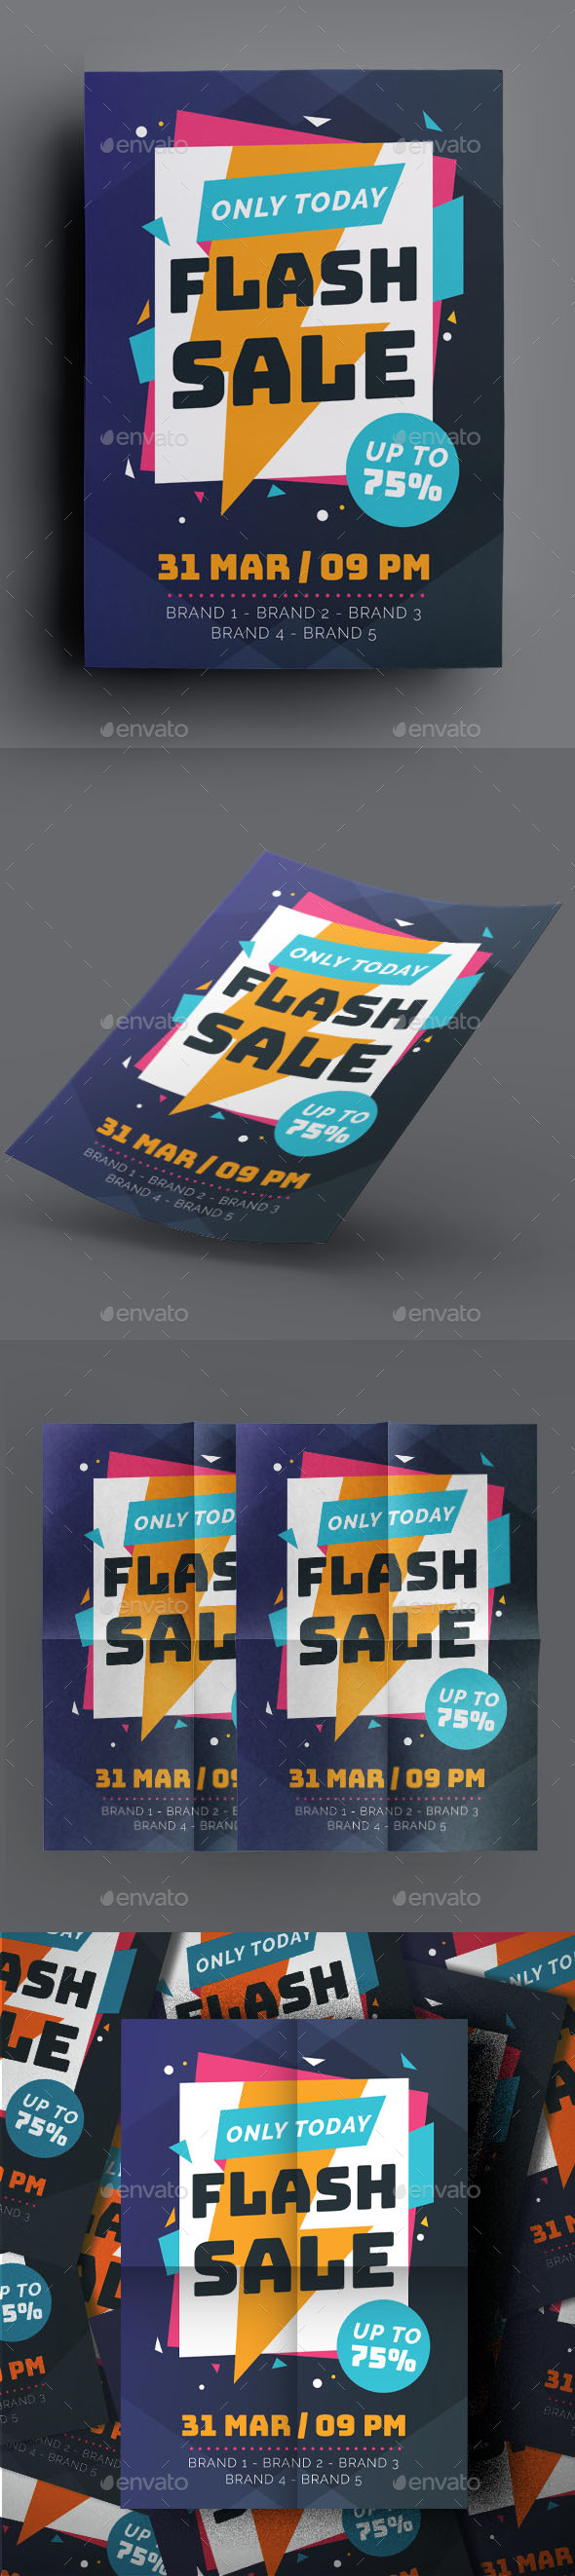 Flash Sale Flyer - Flyers Print Templates